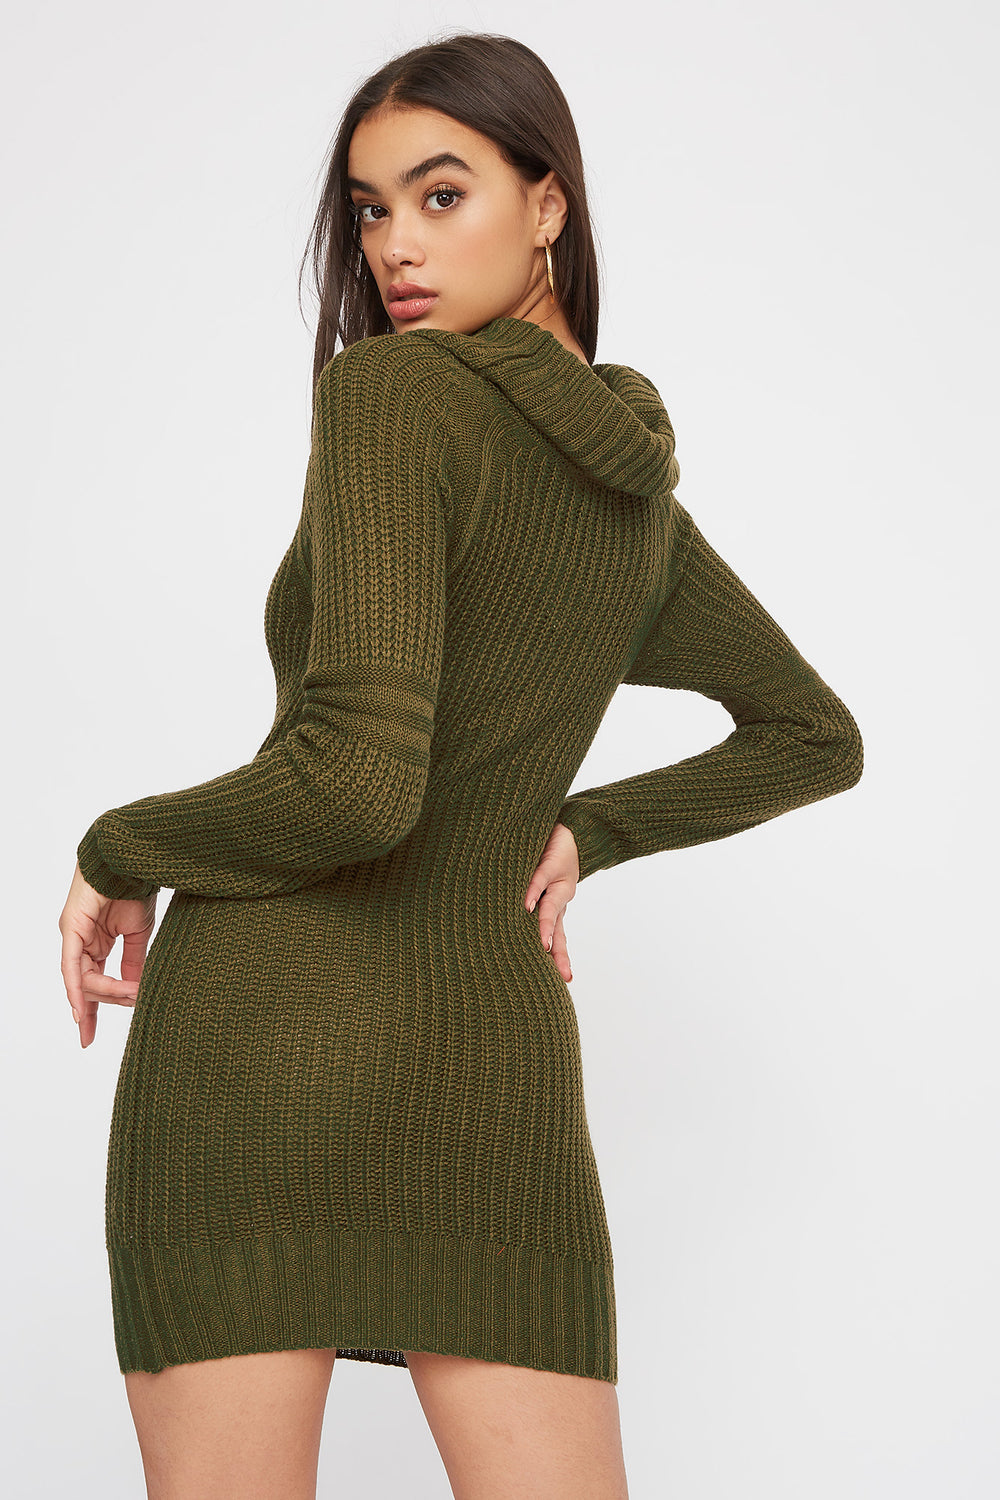 Cowl Neck Knit Sweater Dress Dark Green